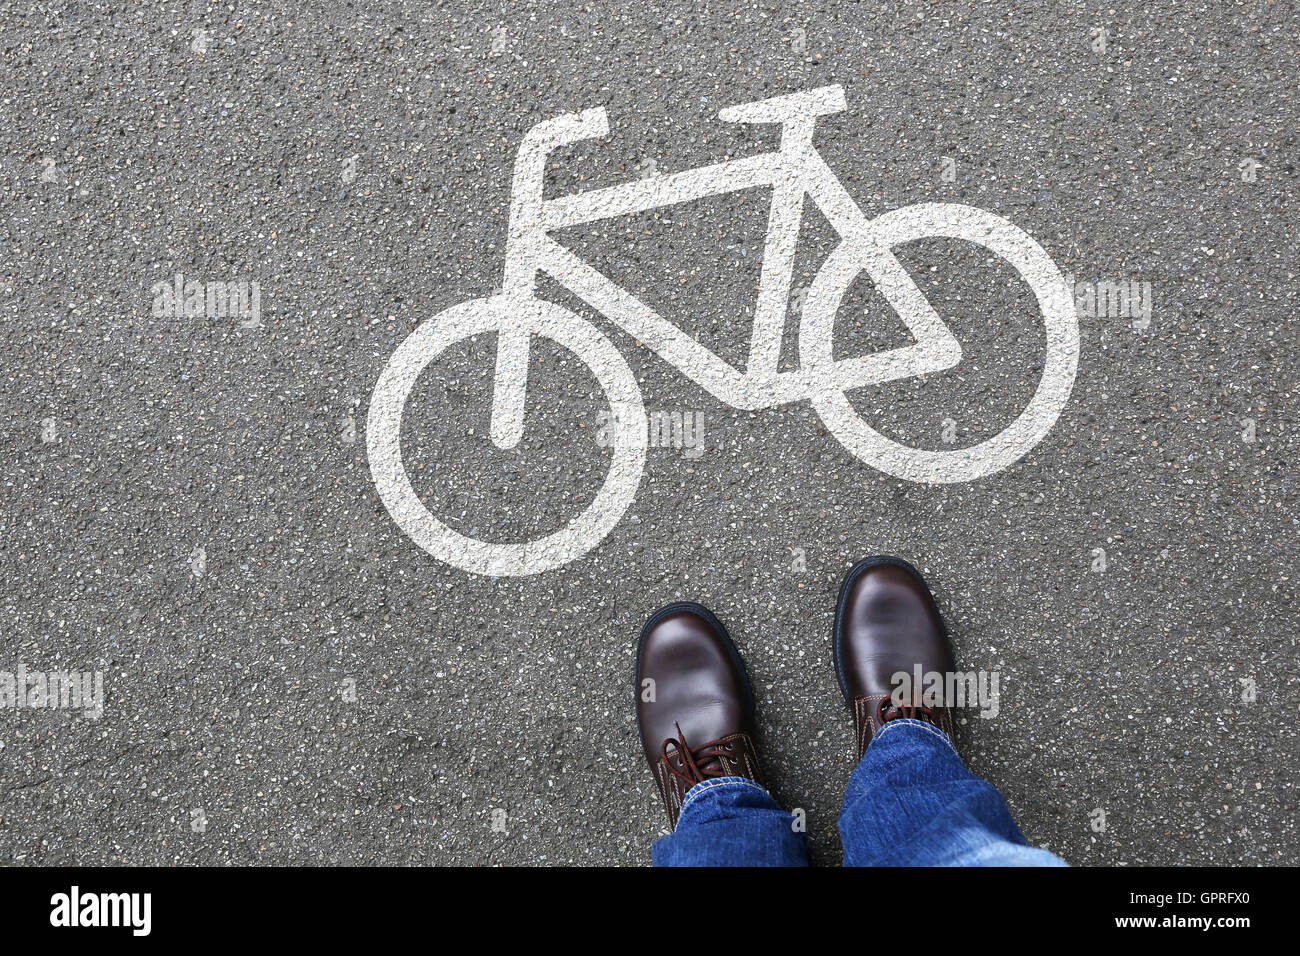 Man people bike lane path way bicycle traffic city transport - Stock Image